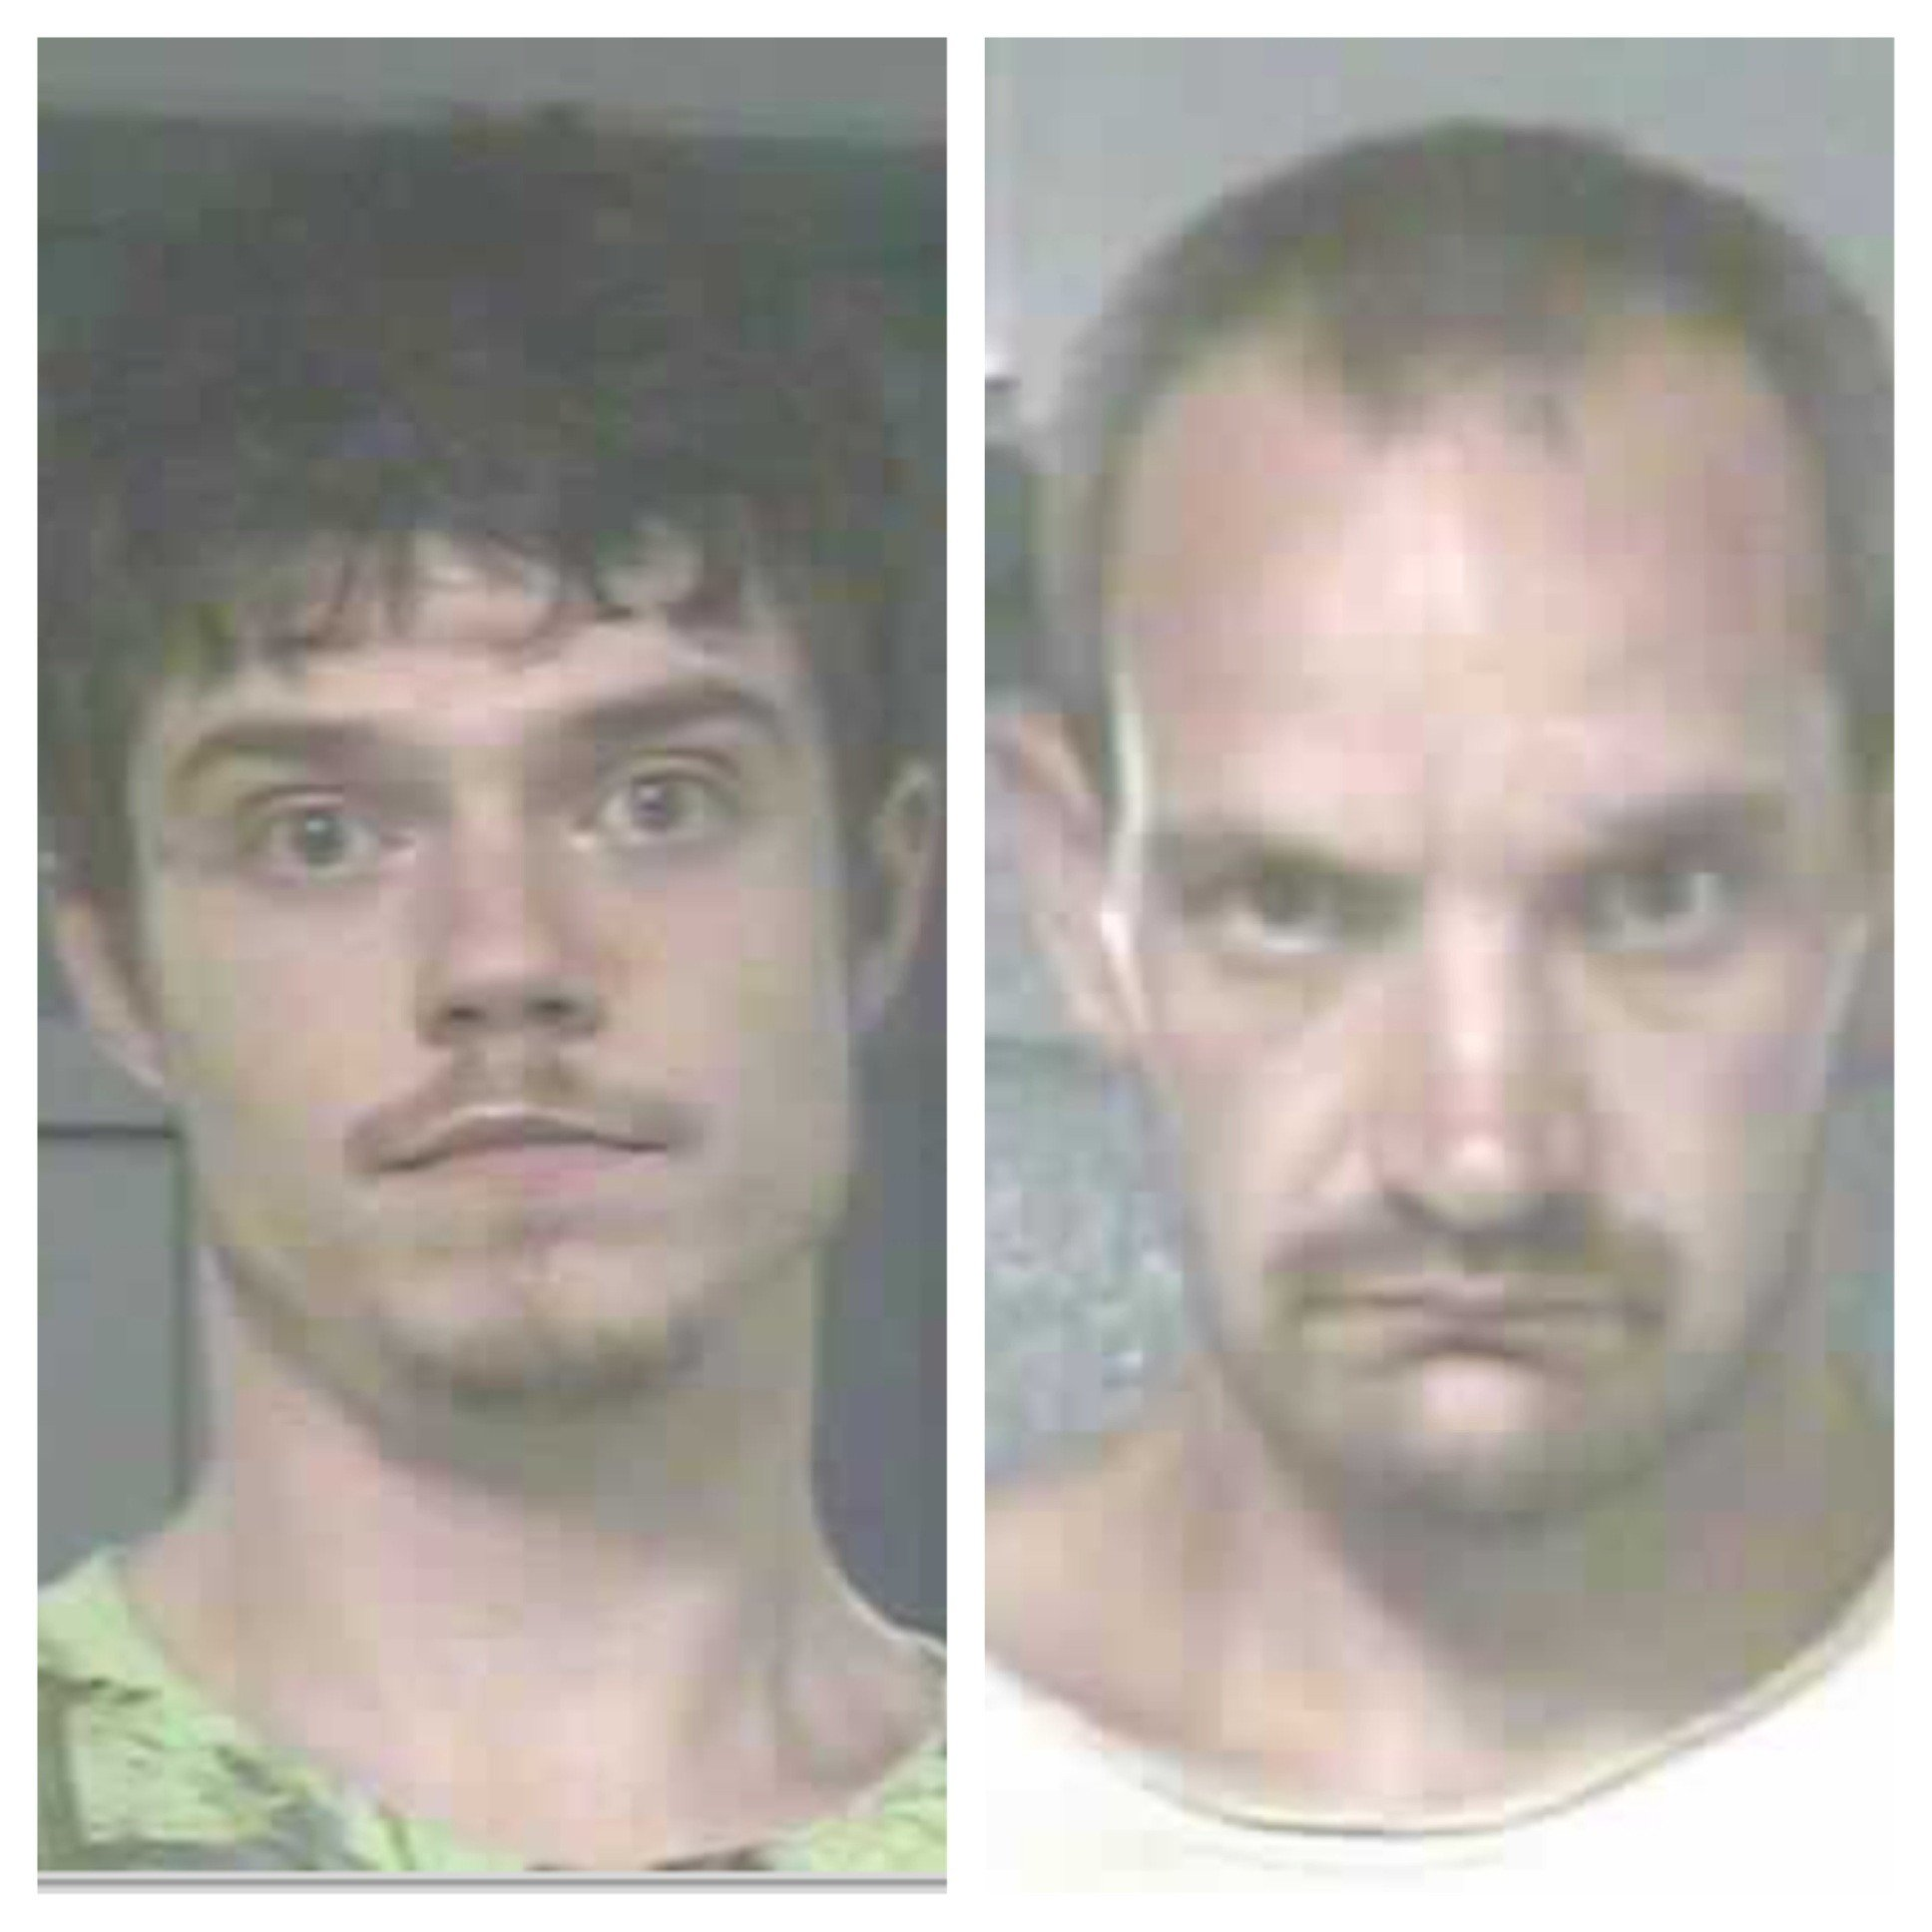 Left: James Burdette, Right: Brian Scarberry